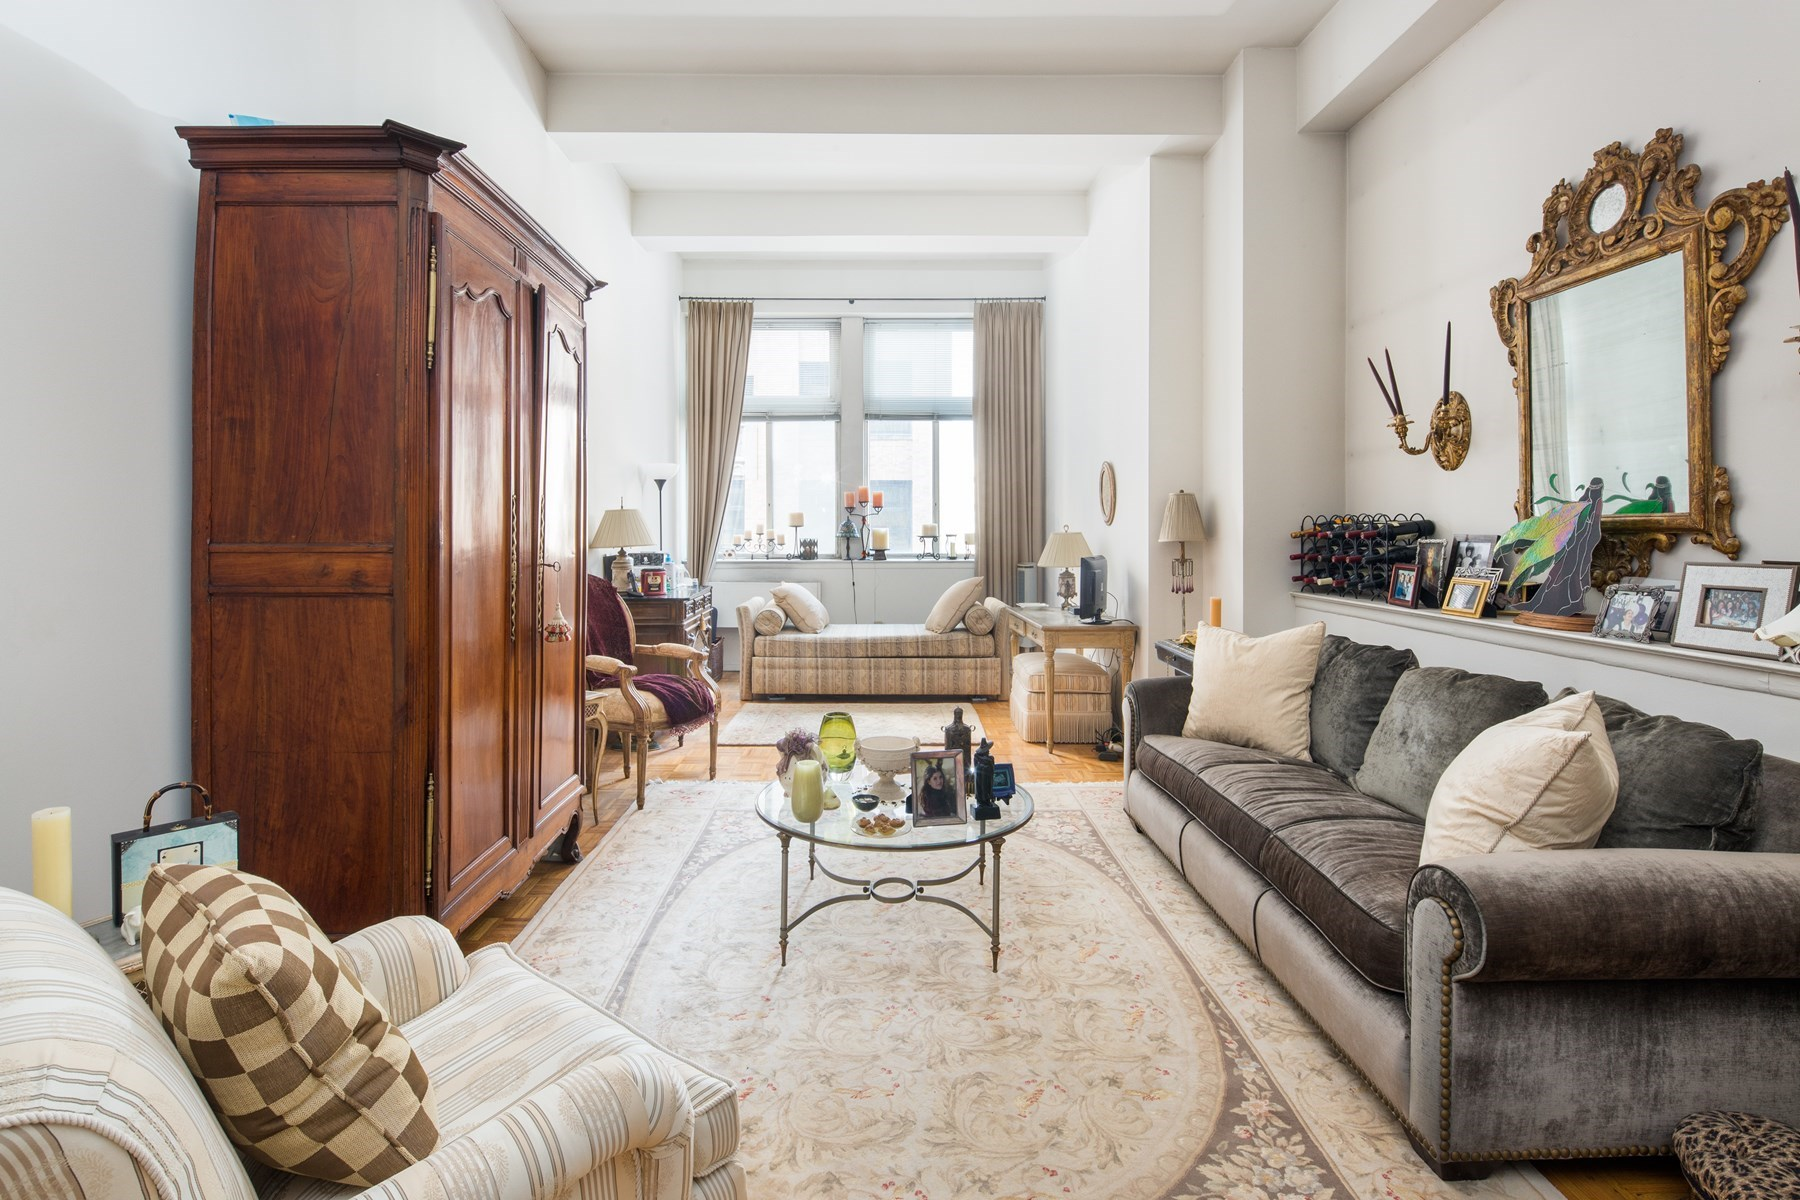 Apartment for Sale at Sprawling Ultra Chic Midtown Loft 310 East 46th Street Apt 7H Midtown East, New York, New York, 10017 United States